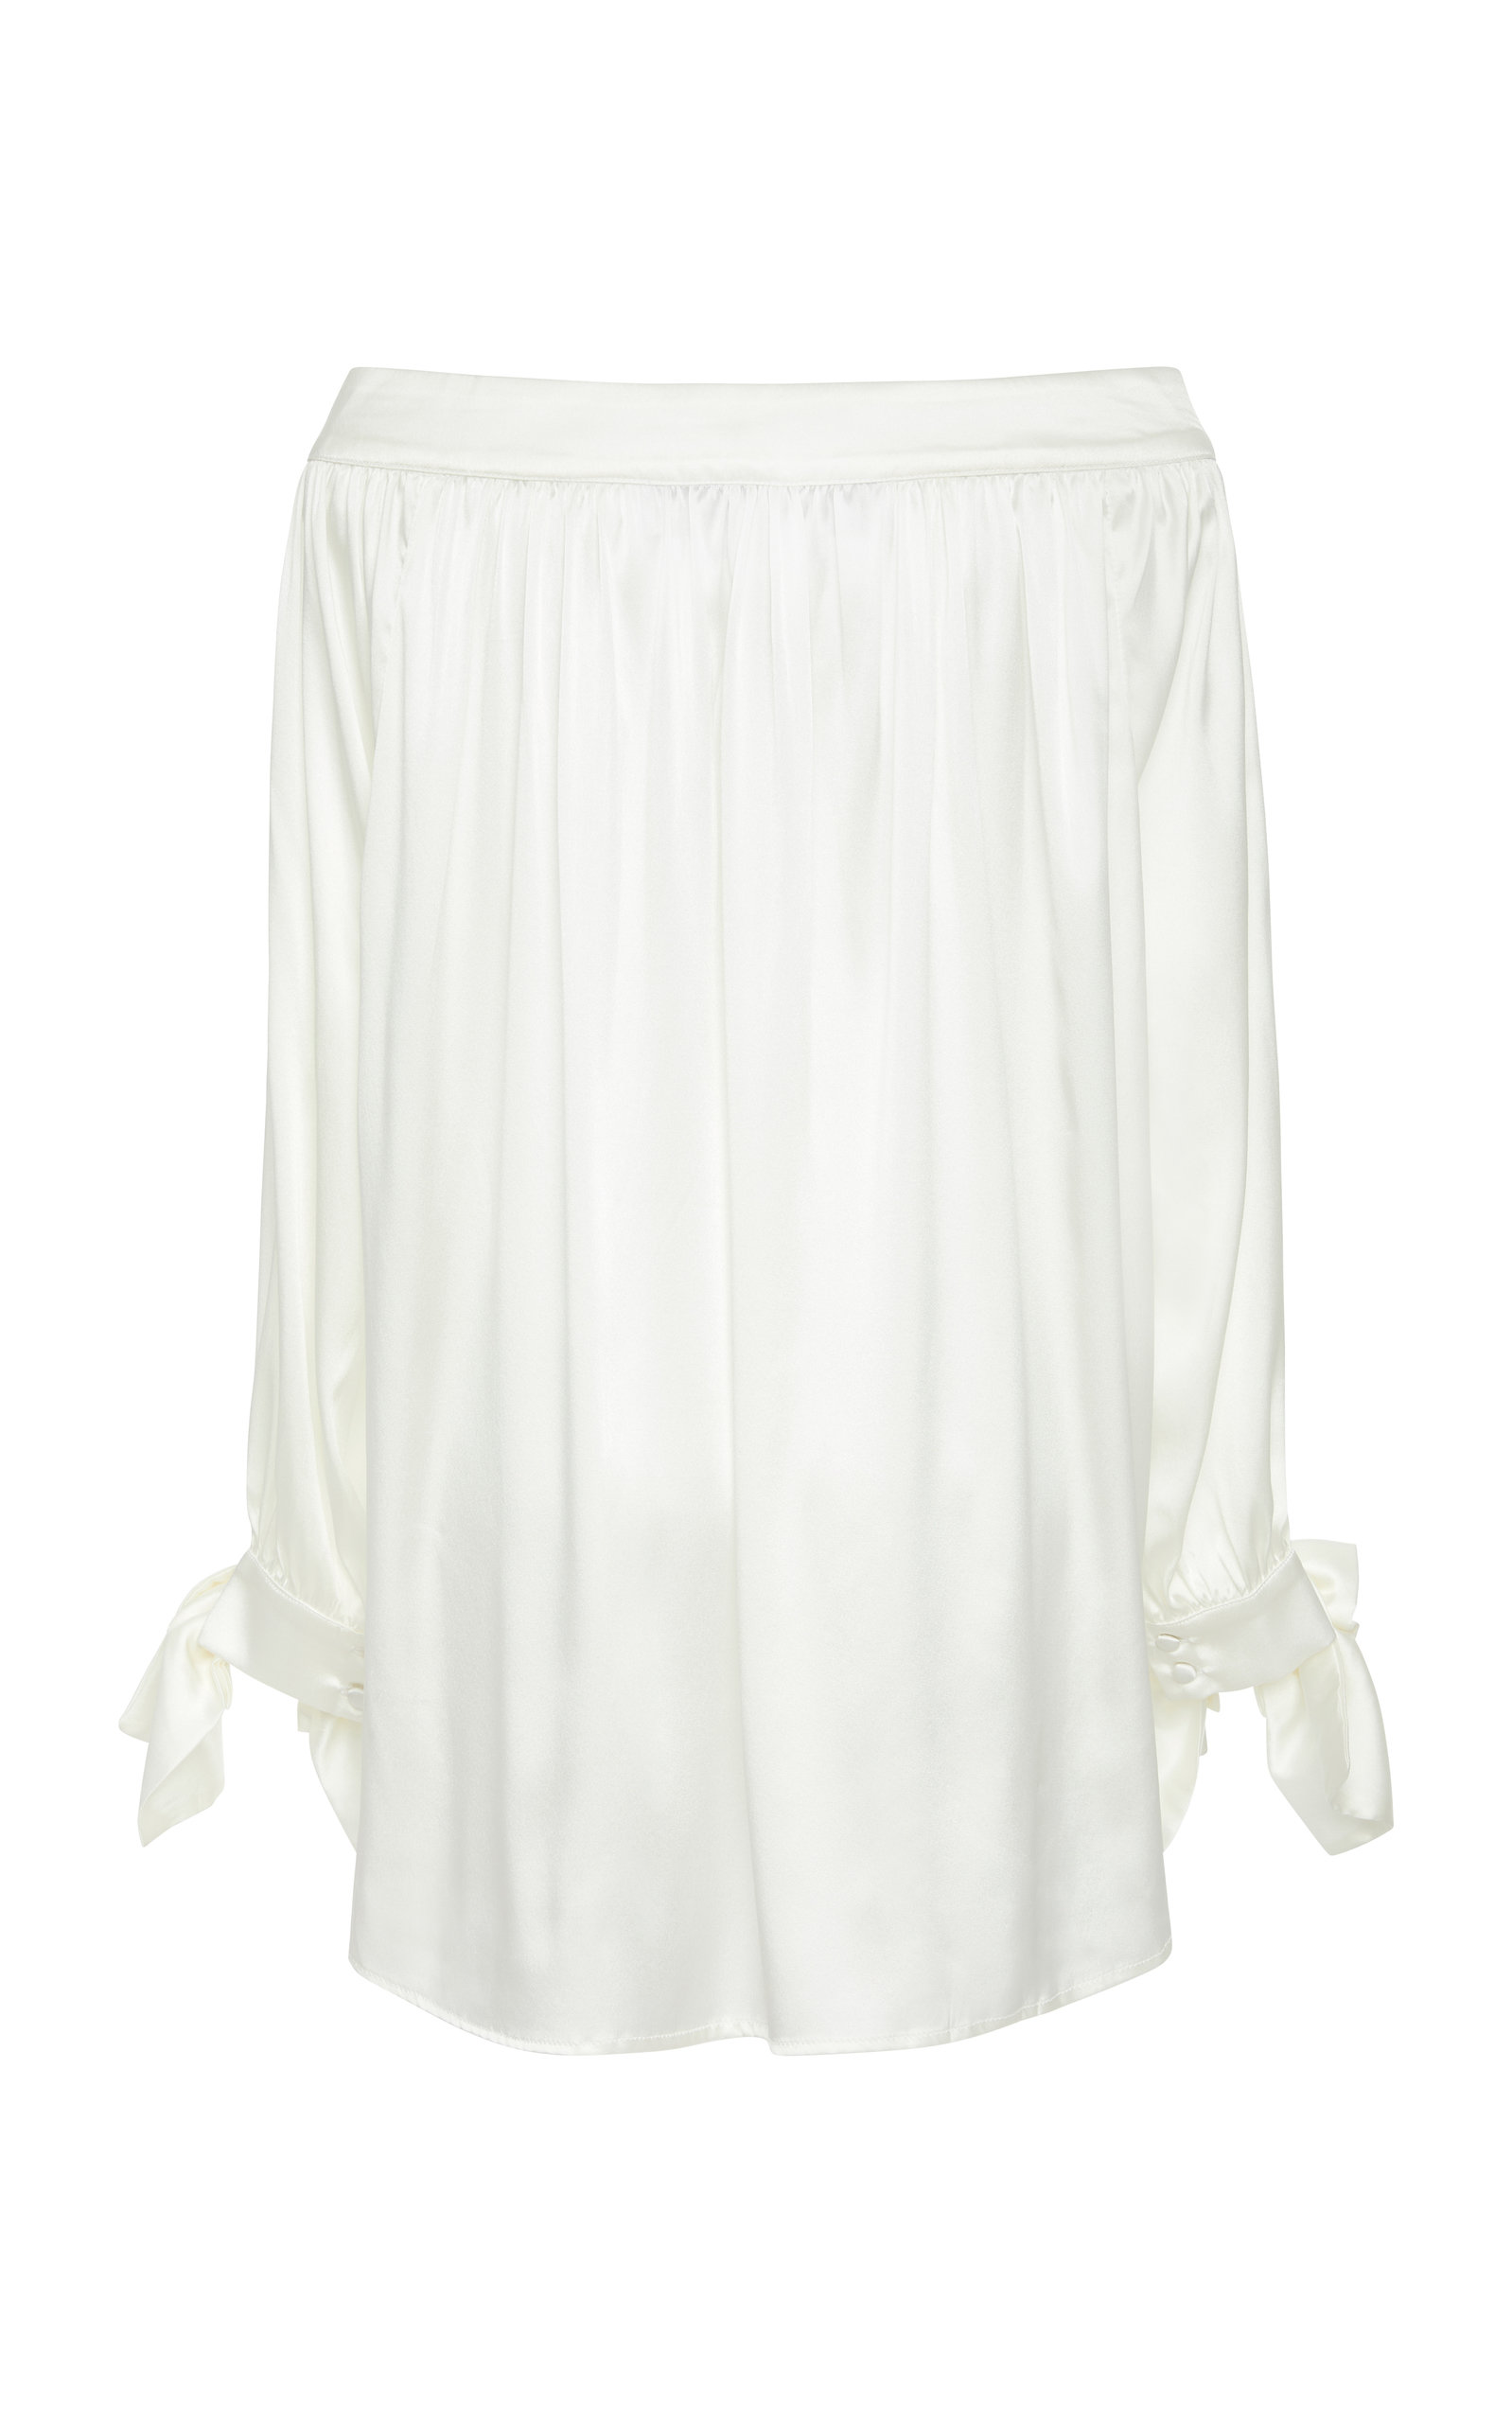 ACHEVAL PAMPA DESNUDA BOW SLEEVE BLOUSE